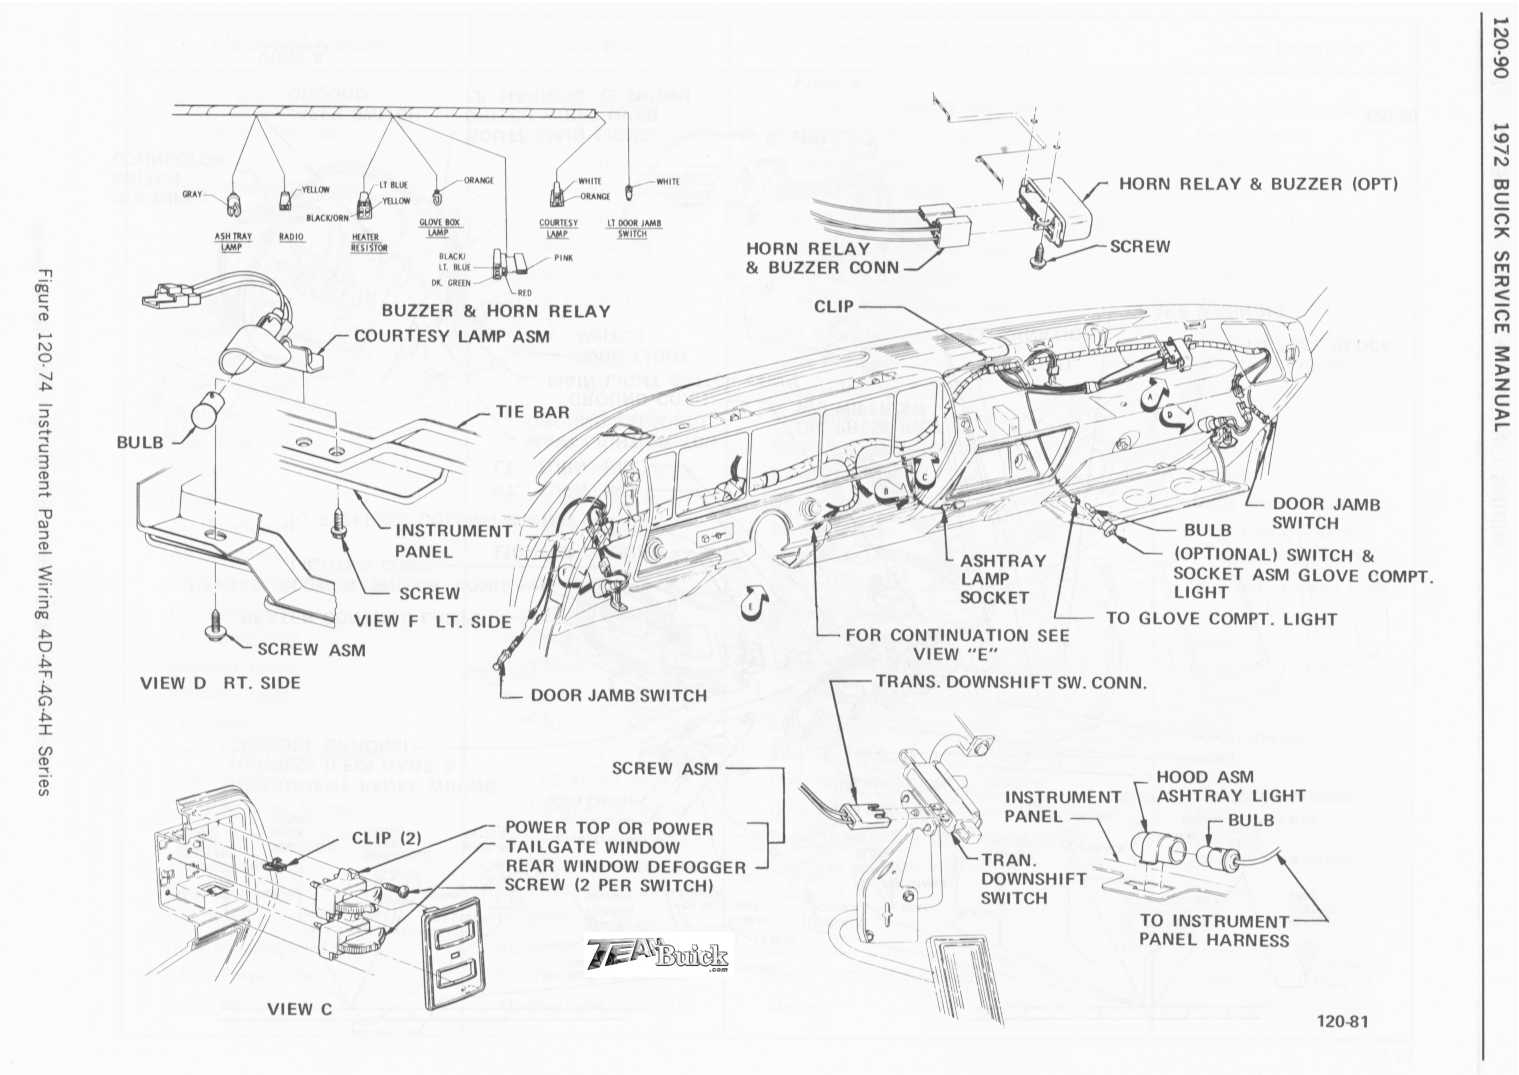 1972 Buick Instrument Panel Wiring